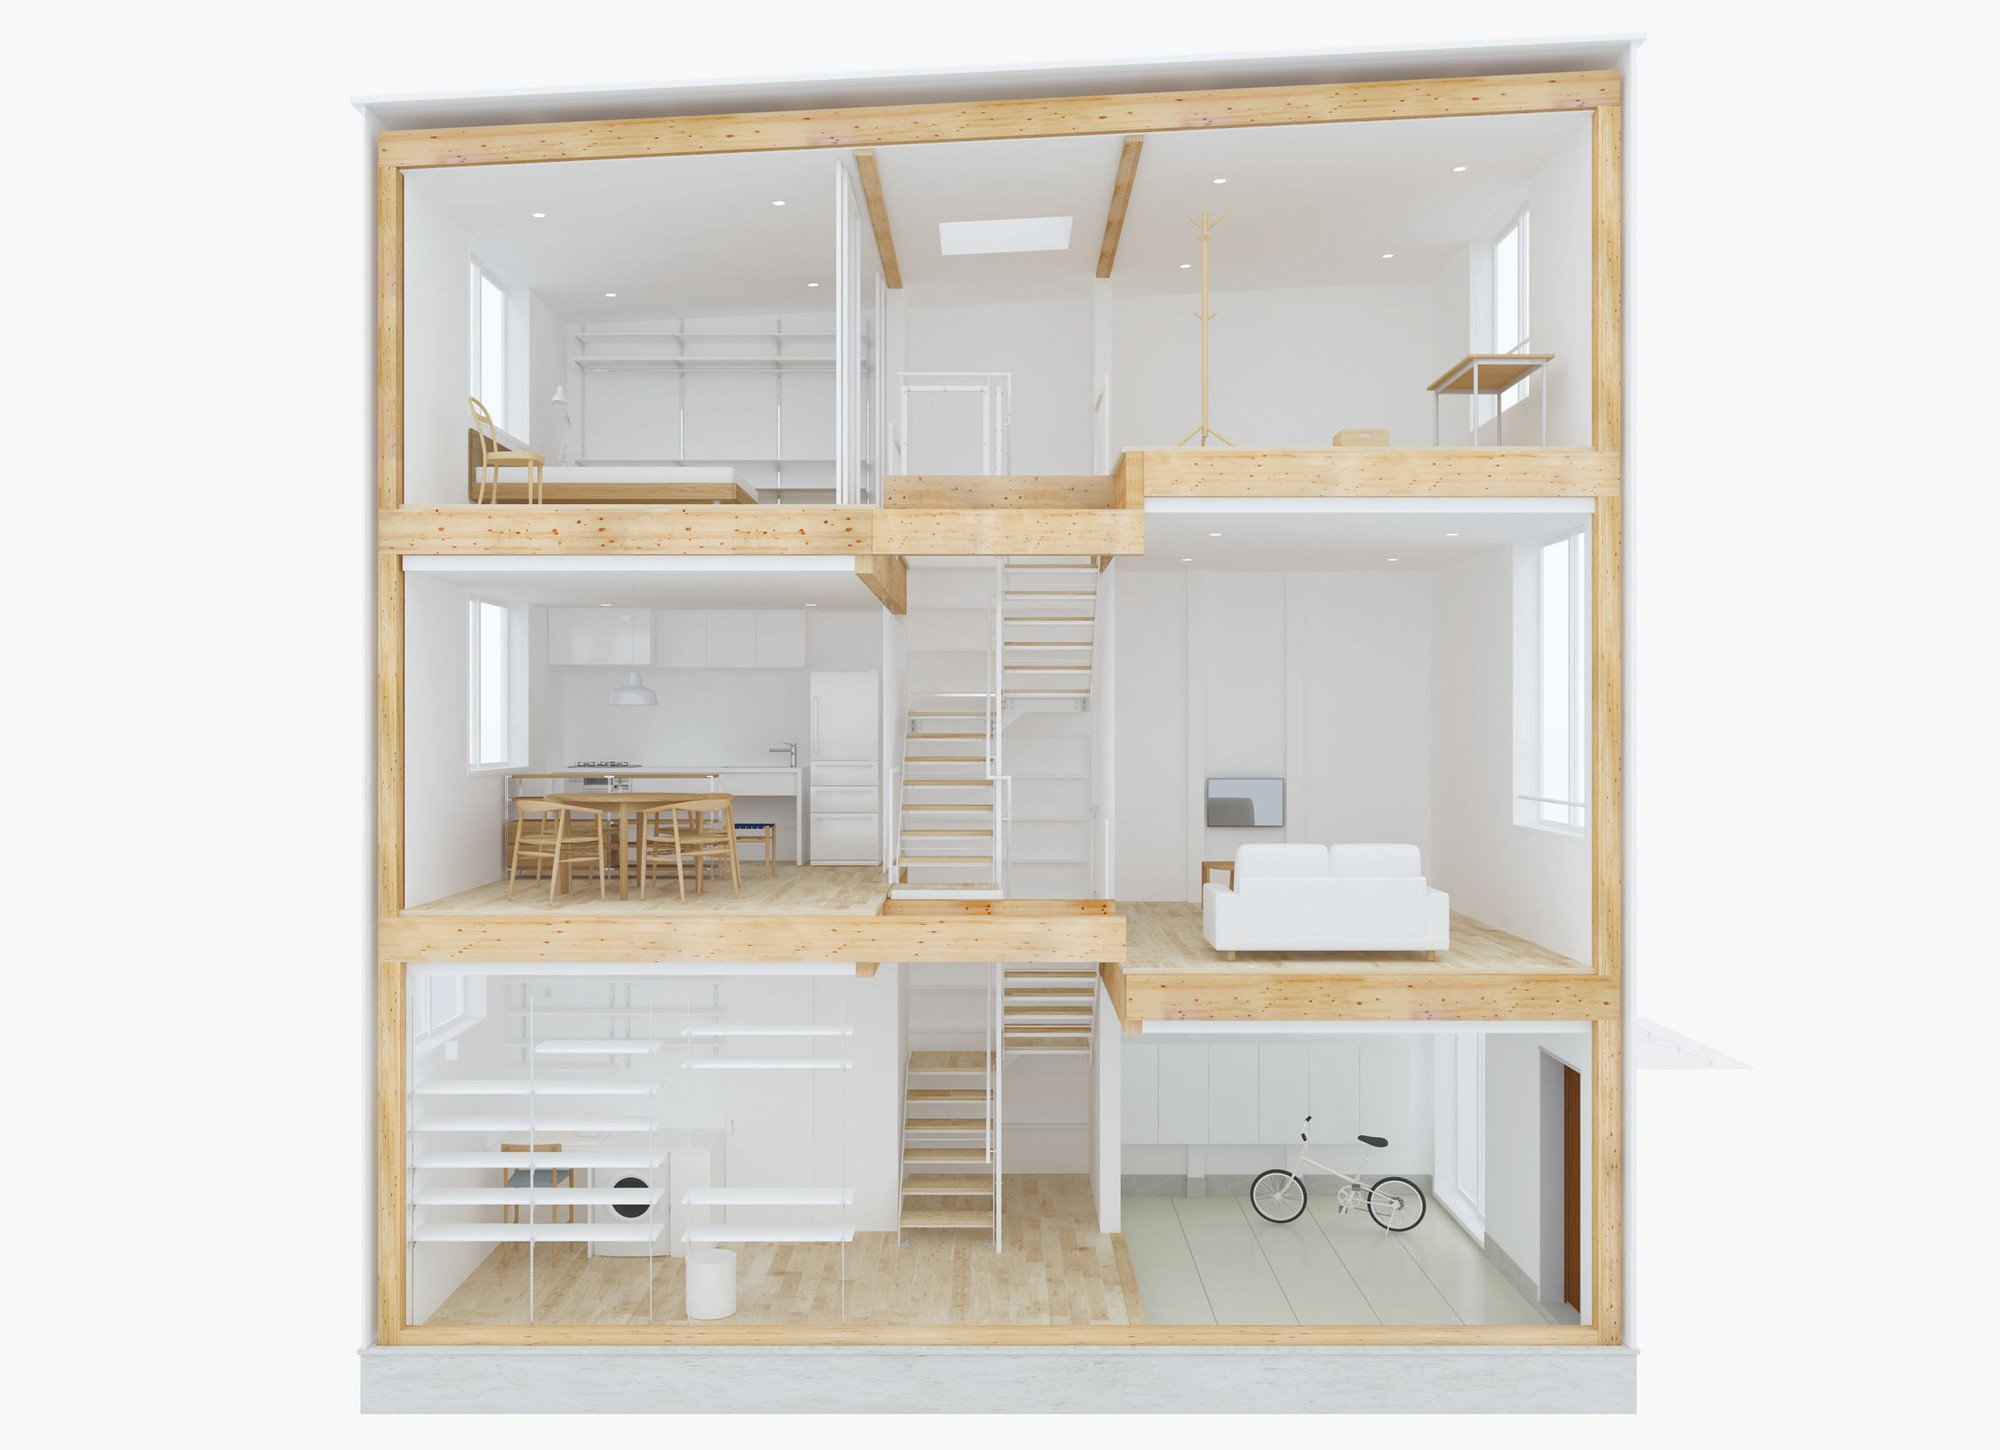 design your own home with muji's prefab vertical house | archdaily